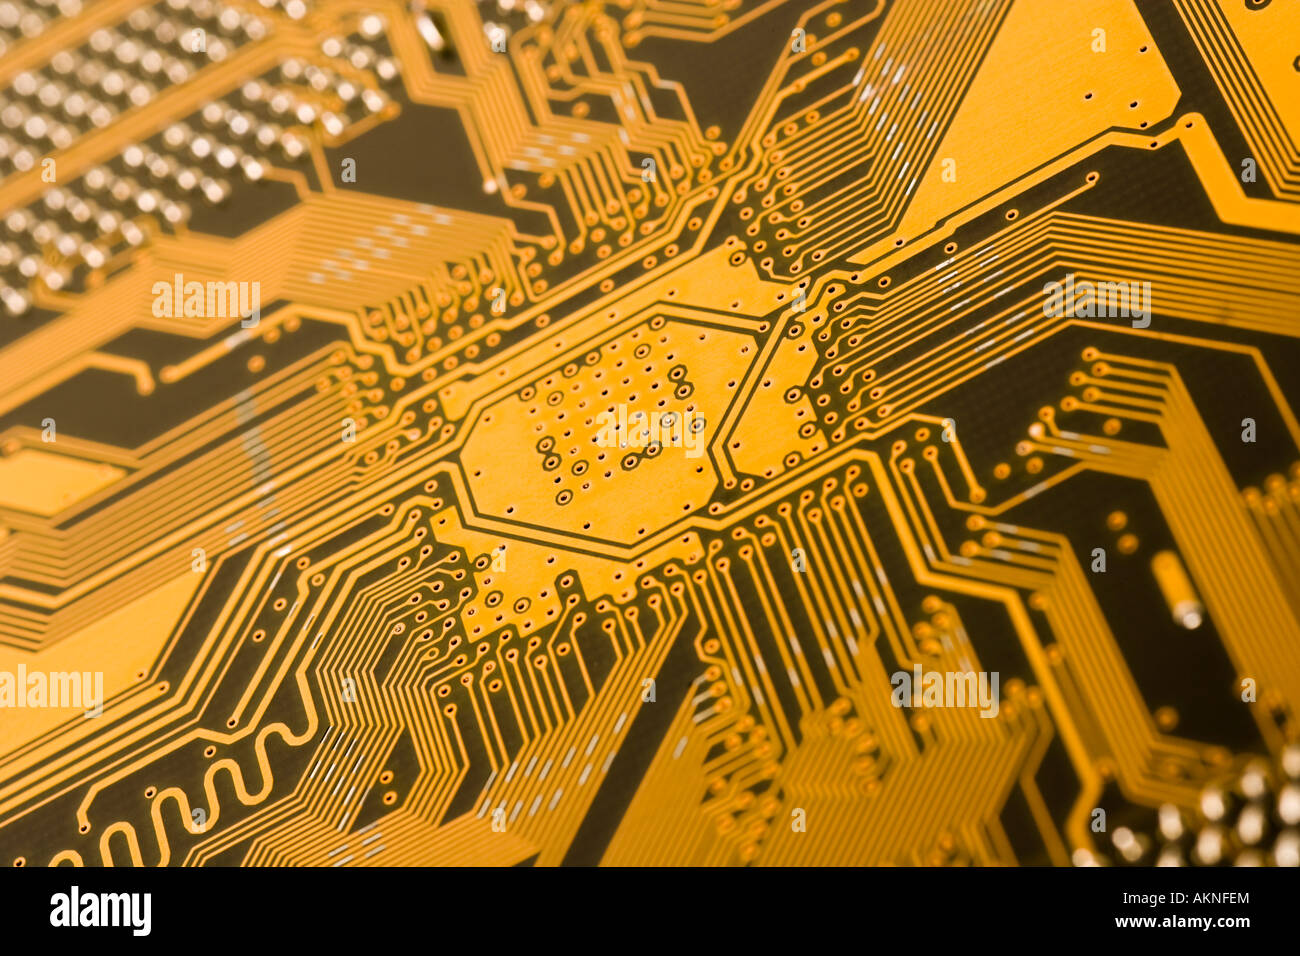 gold circuit board stock photos gold circuit board stock images